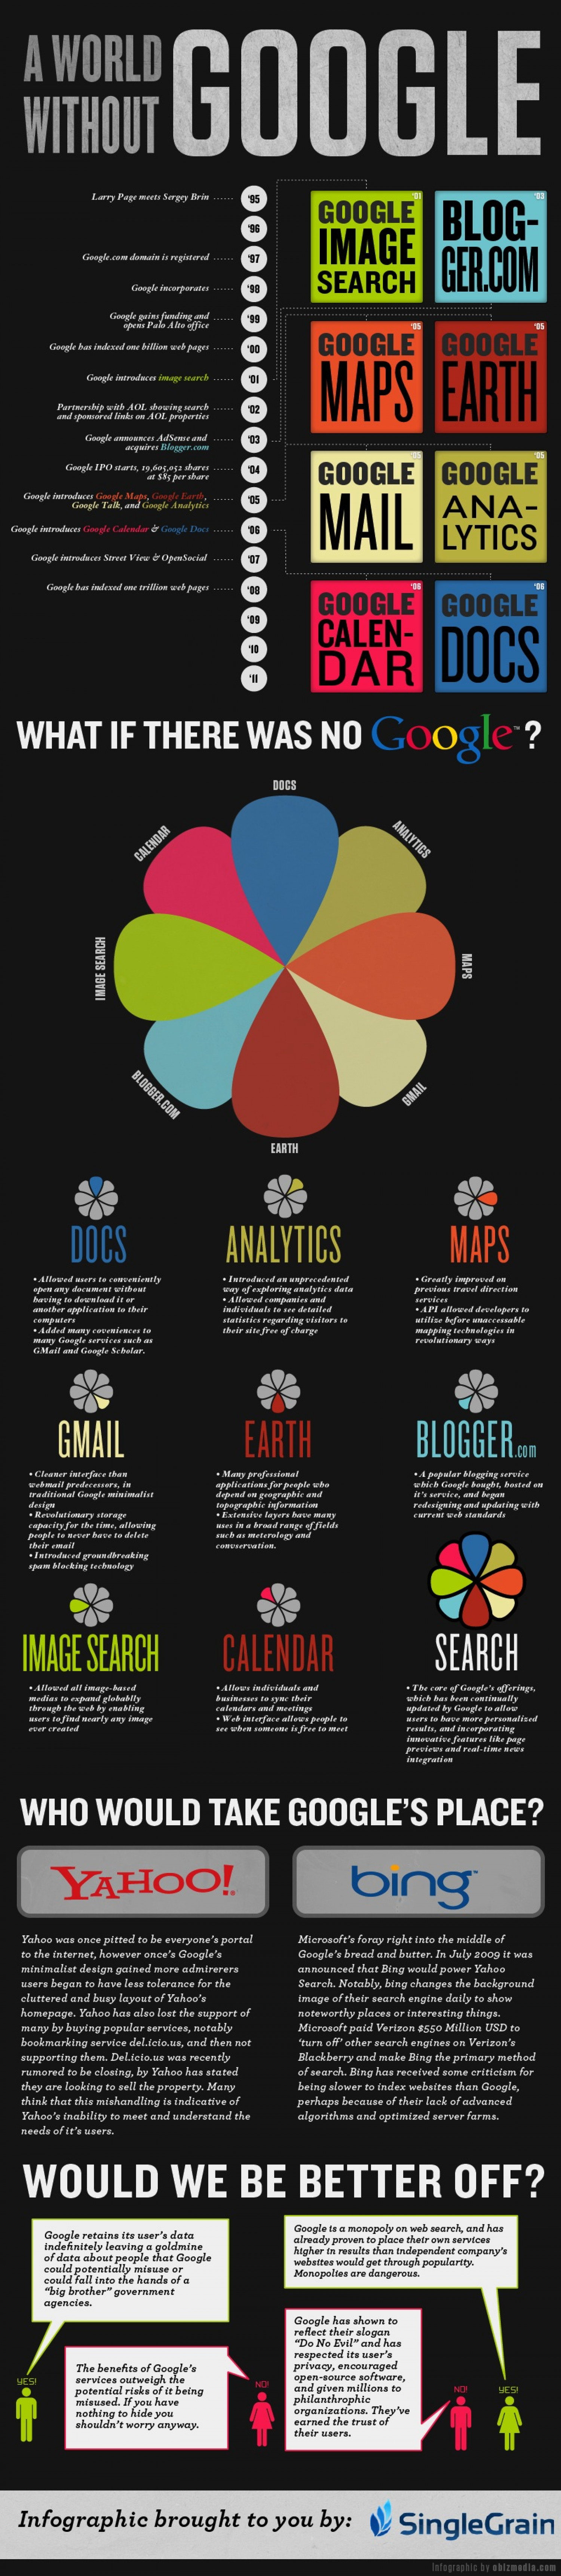 A World Without Google Infographic